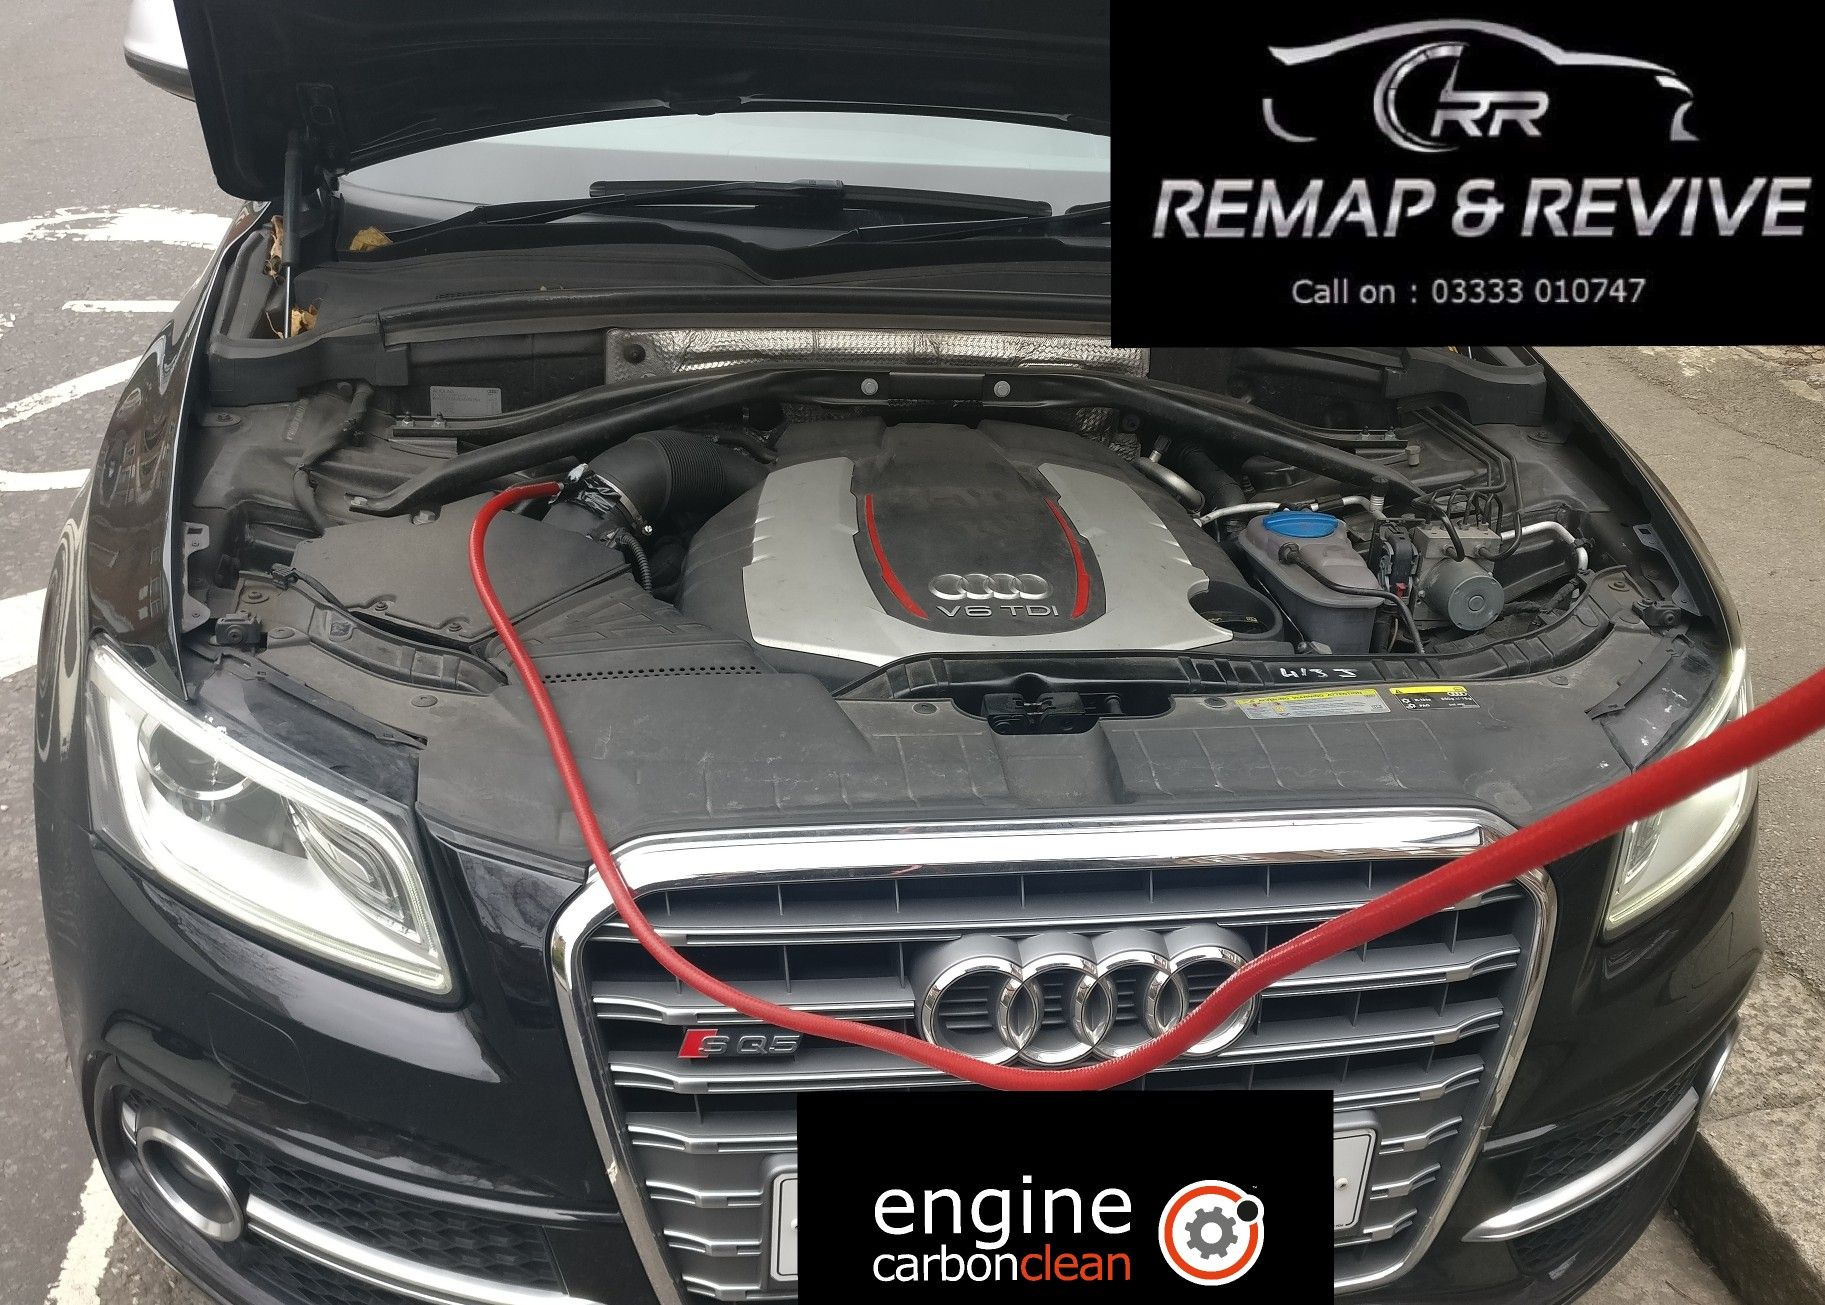 Audi SQ5 having power loss problems  2 garages best